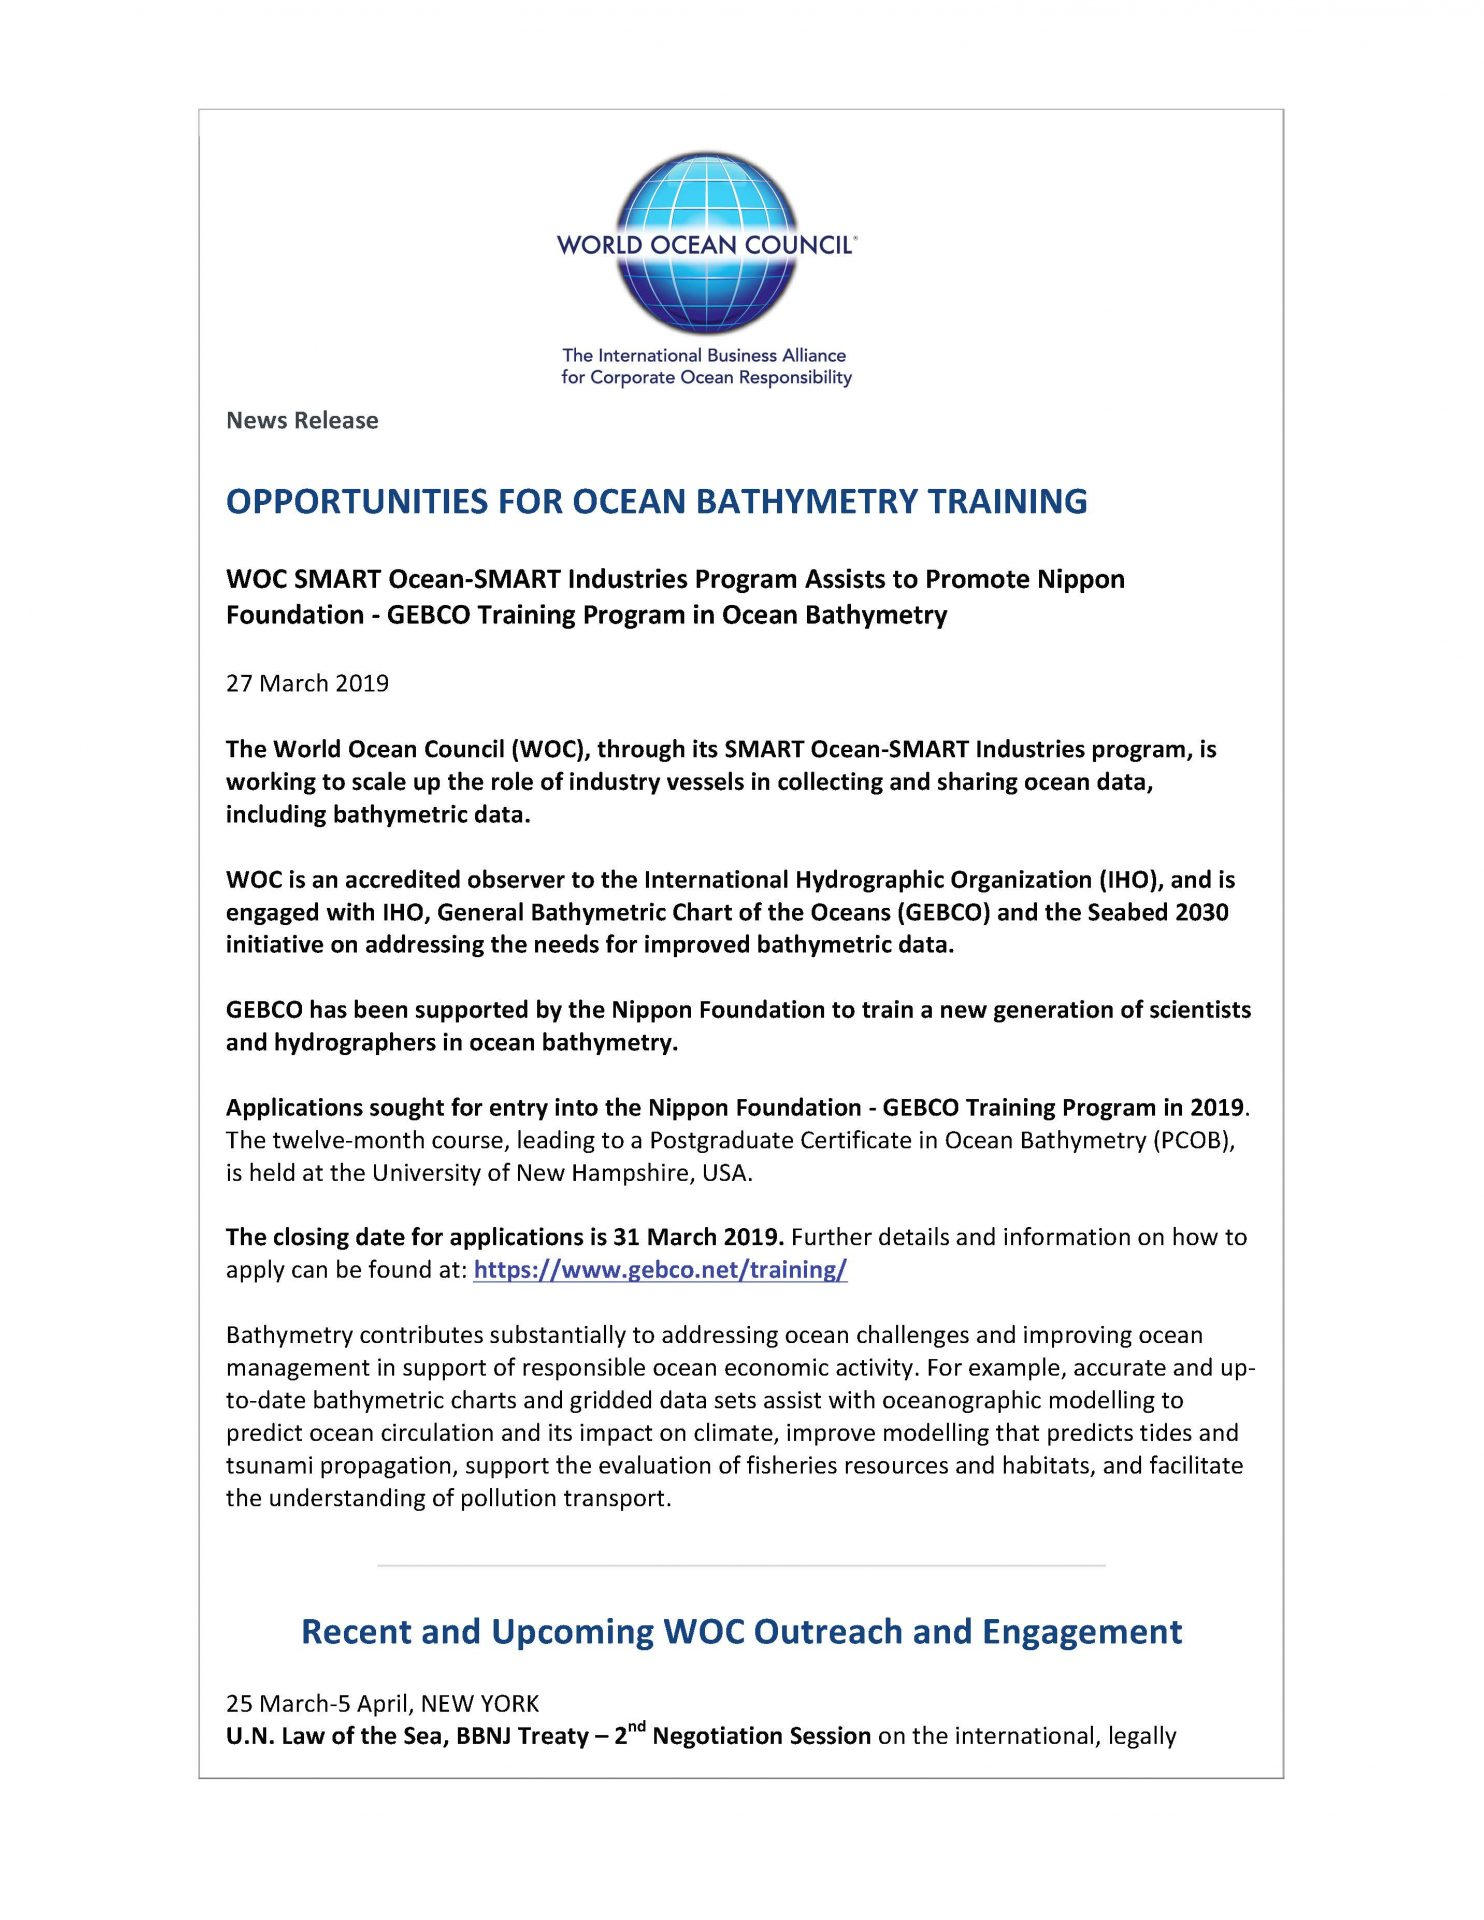 Opportunities for Ocean Bathymetry Training - 27 March 2019